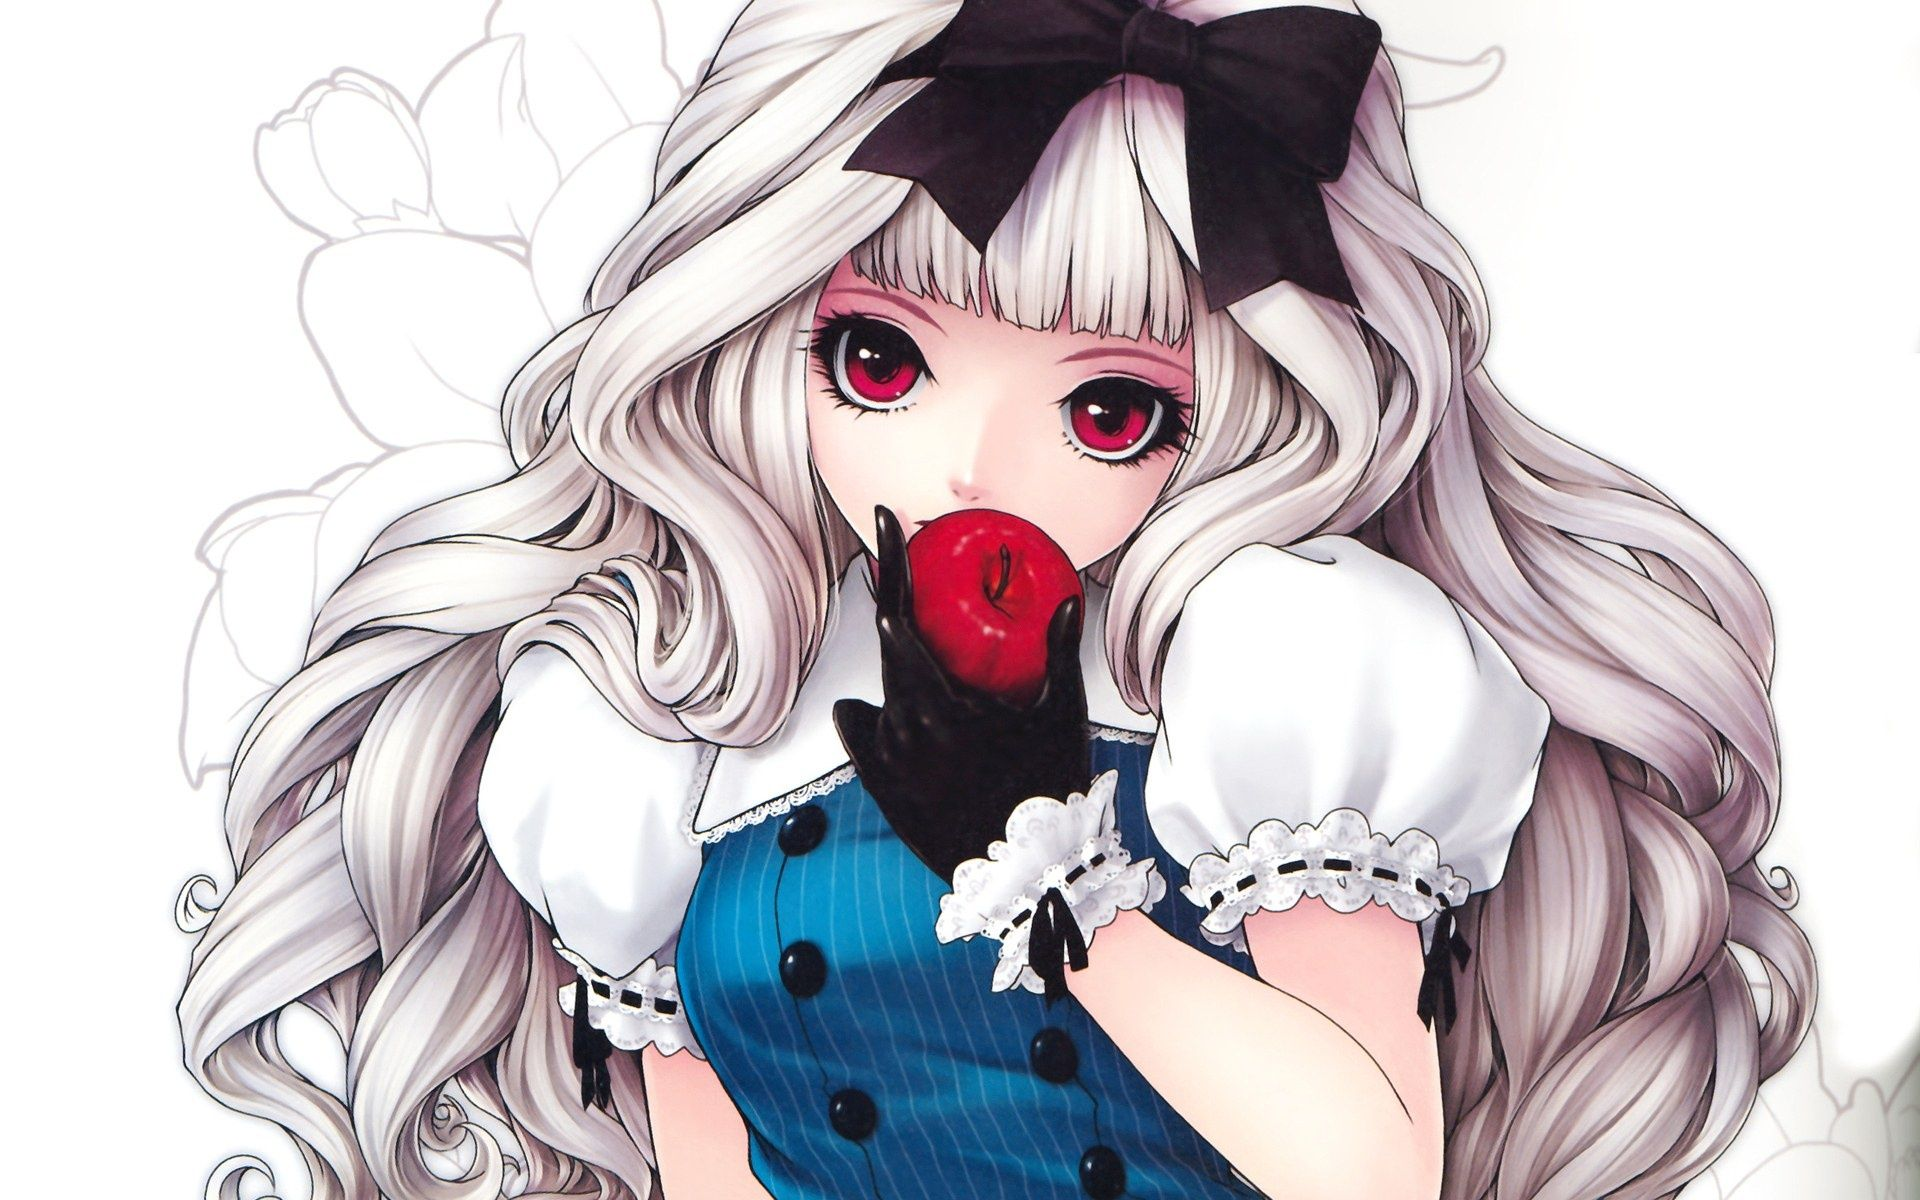 Preview Anime Picture - Anime Girl With Silver Curly Hair , HD Wallpaper & Backgrounds